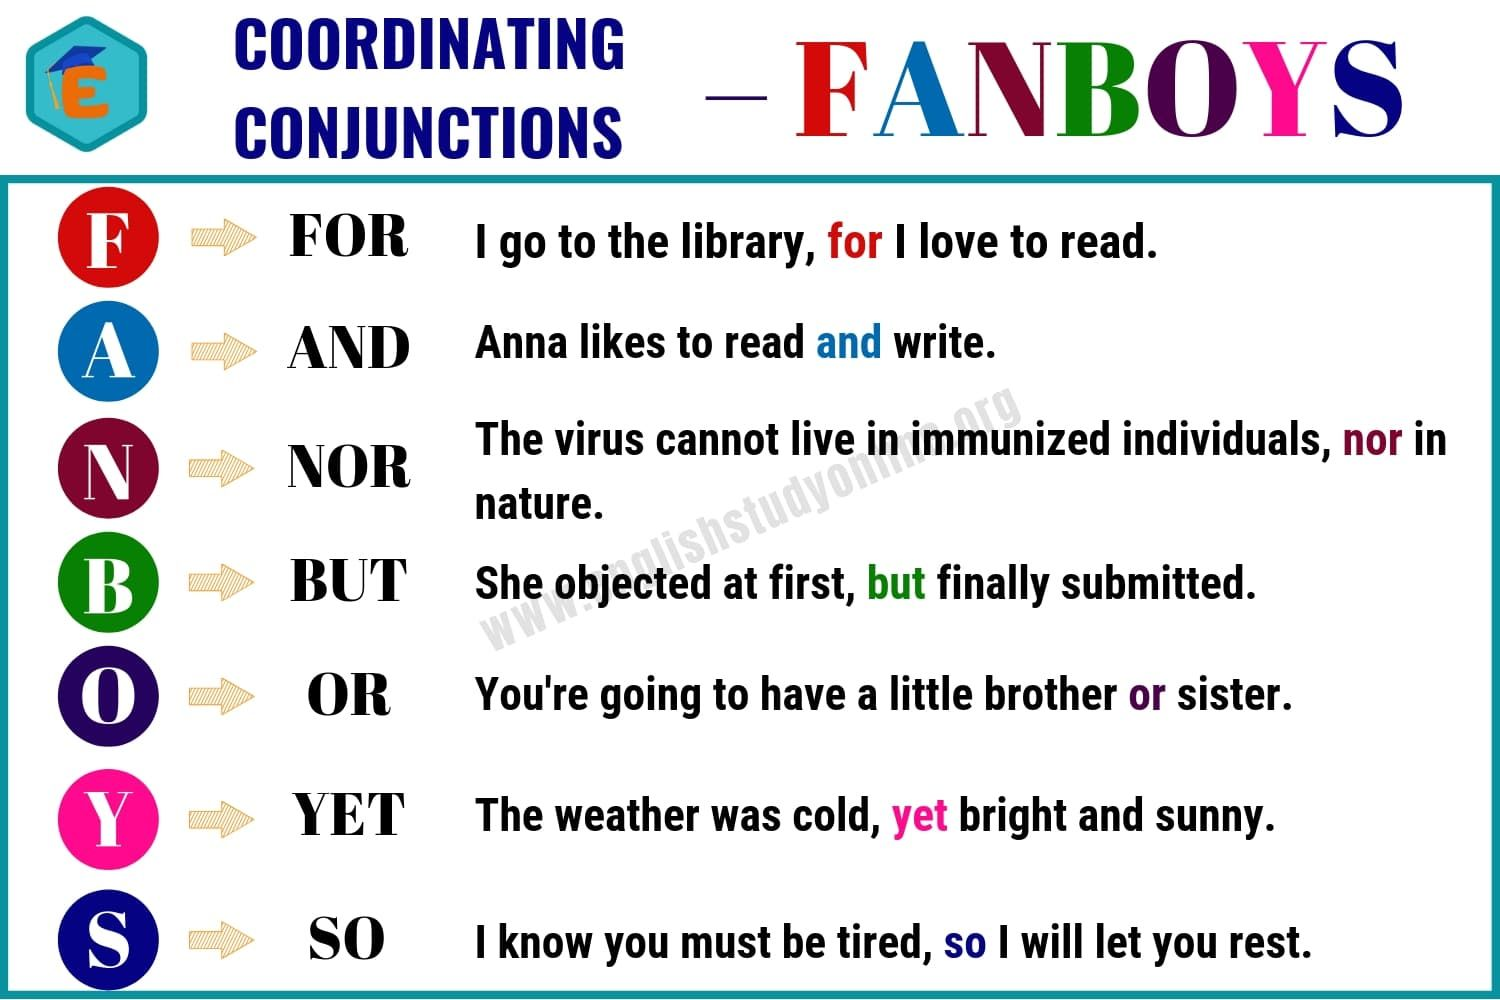 FANBOYS - 7 Helpful Coordinating Conjunctions with Examples - English Study  Online   Coordinating conjunctions [ 1000 x 1500 Pixel ]